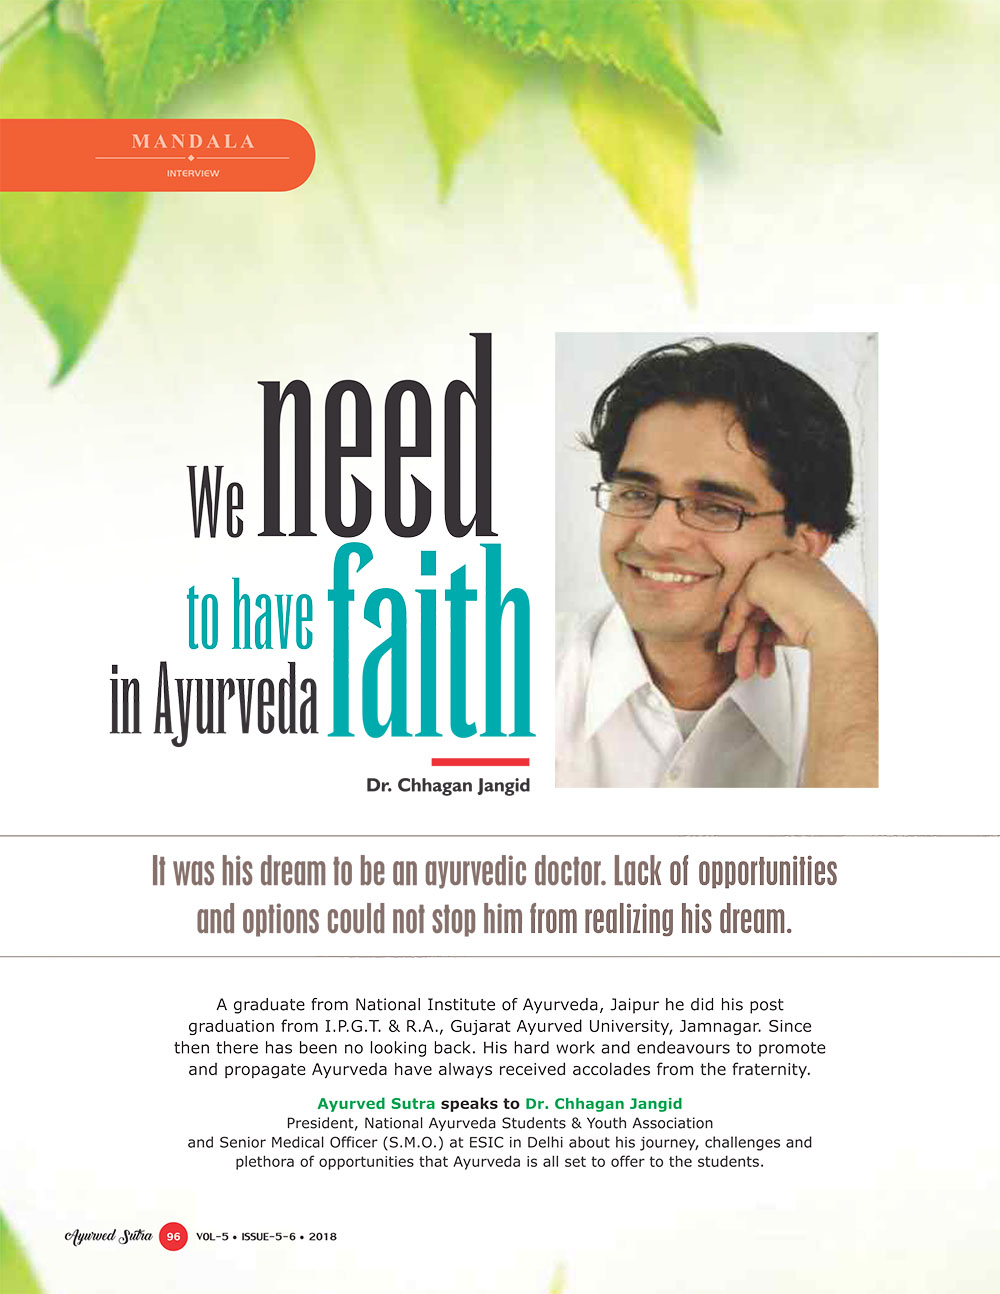 Ayurvedsutra Vol 05 issue 05 06 98 - We need to have faith in Ayurveda